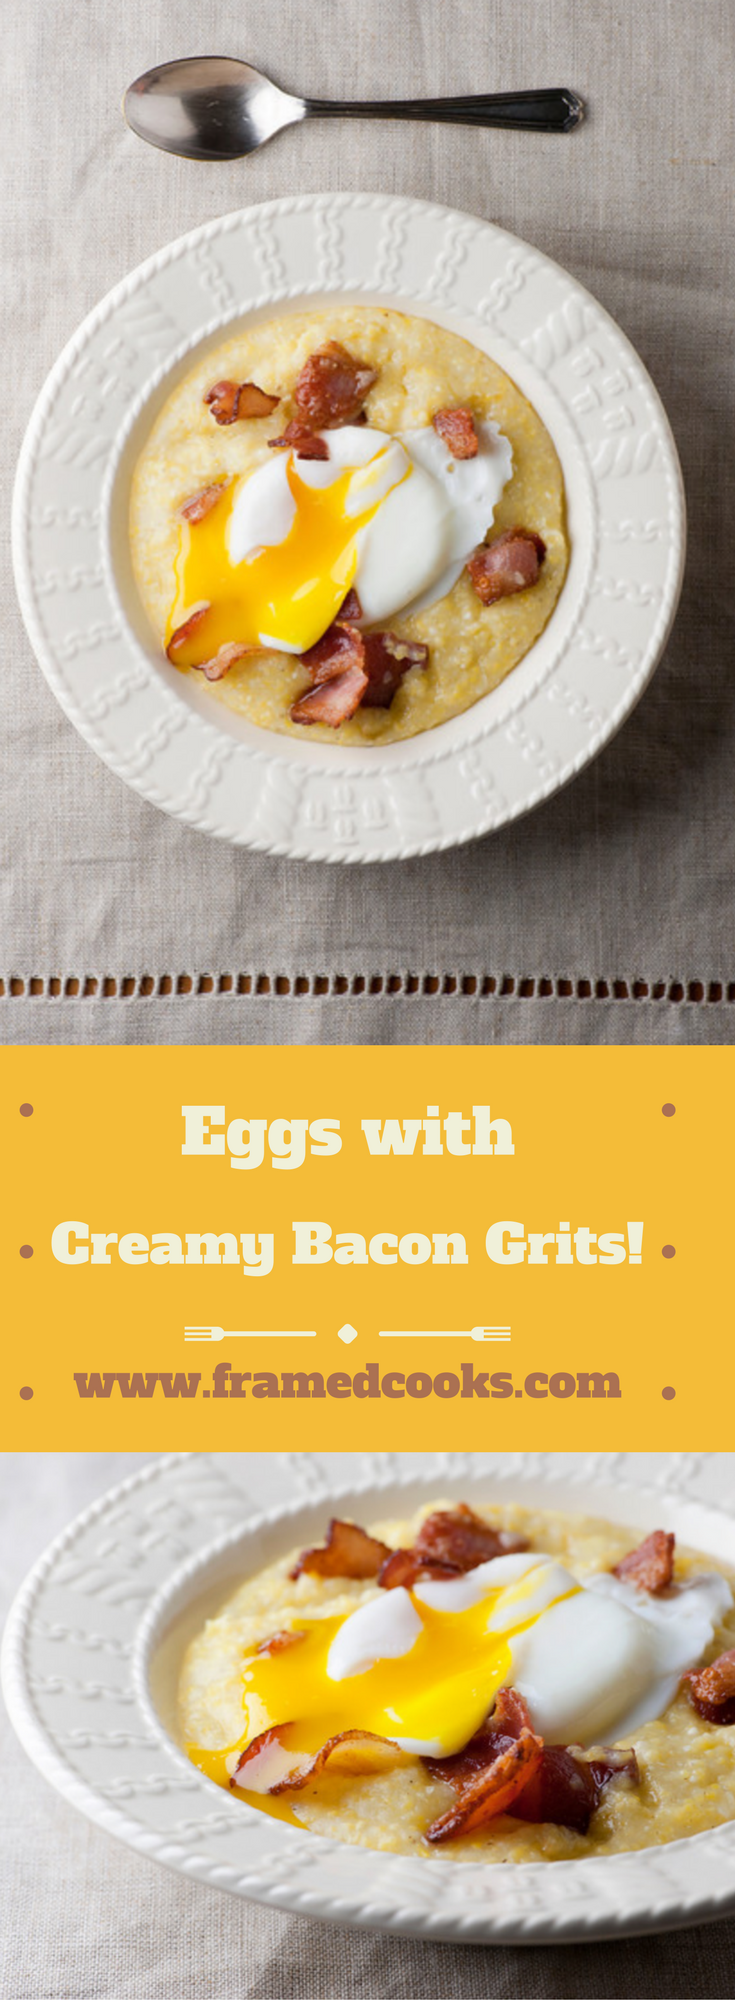 Soft cooked eggs with creamy bacon grits just may be the ultimate comfort food!  Cook up a bowl today with this easy recipe.